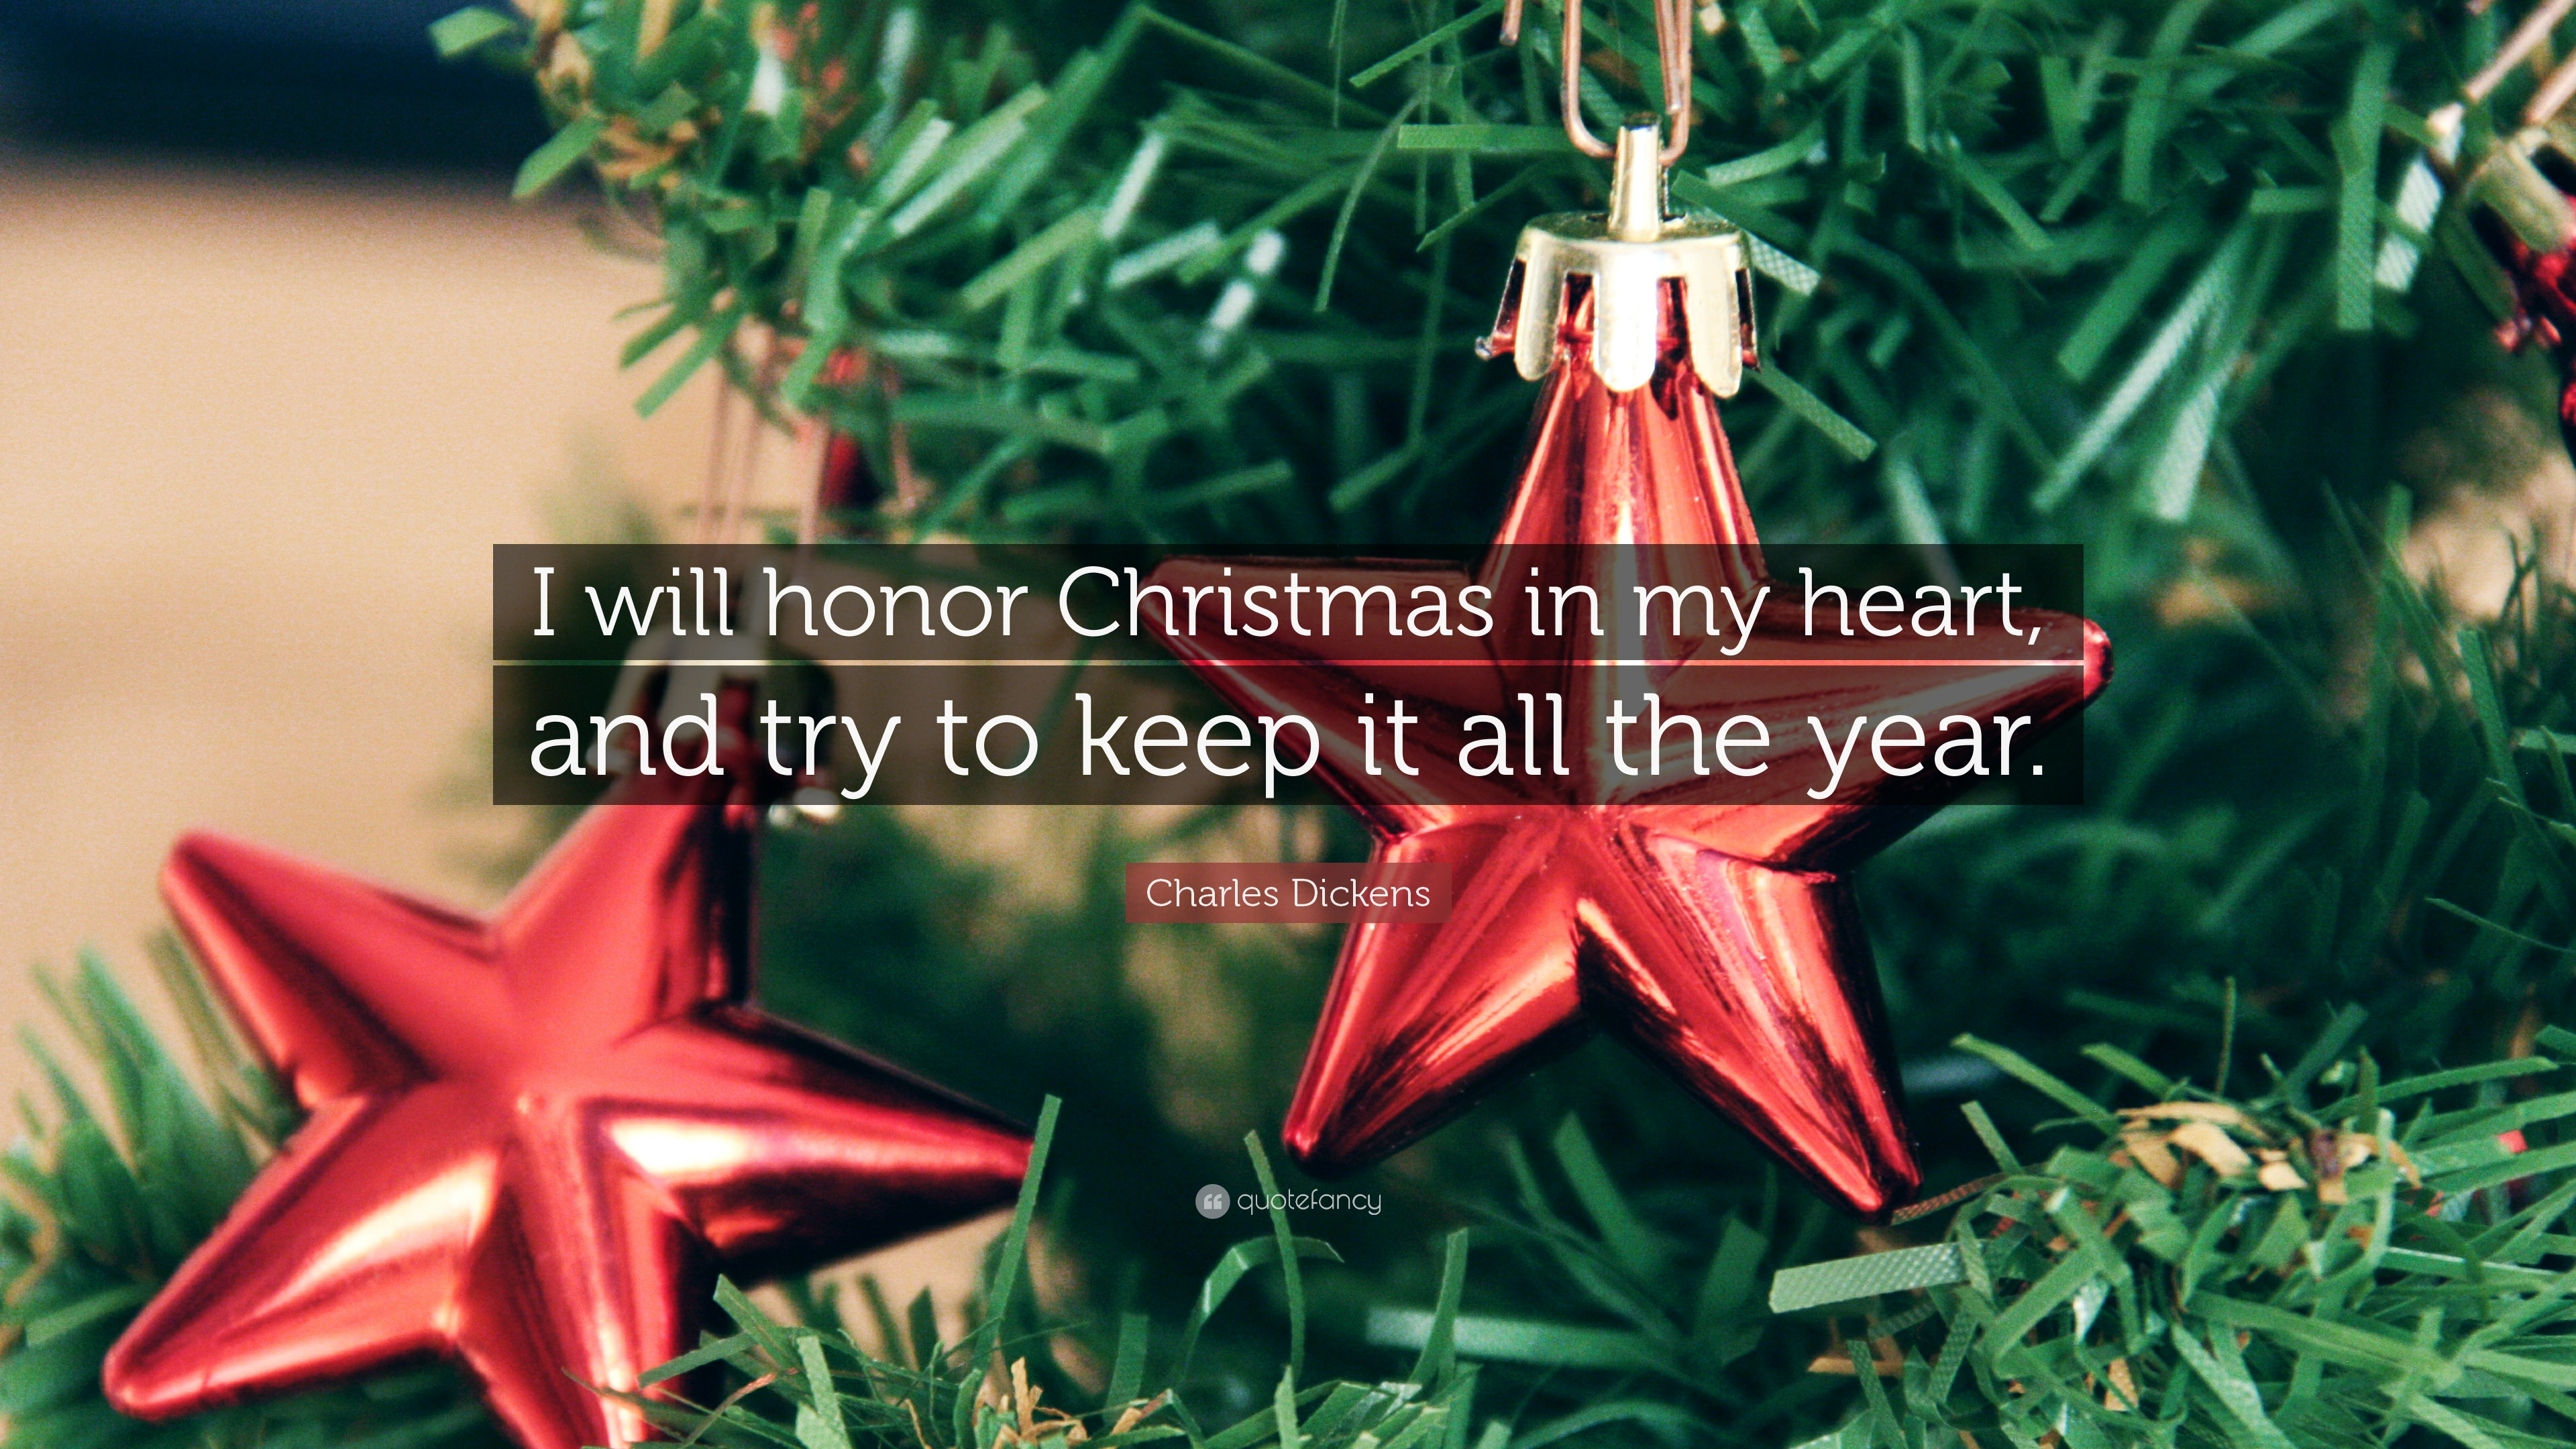 charles dickens quote i will honor christmas in my heart and try to - Christmas In My Heart